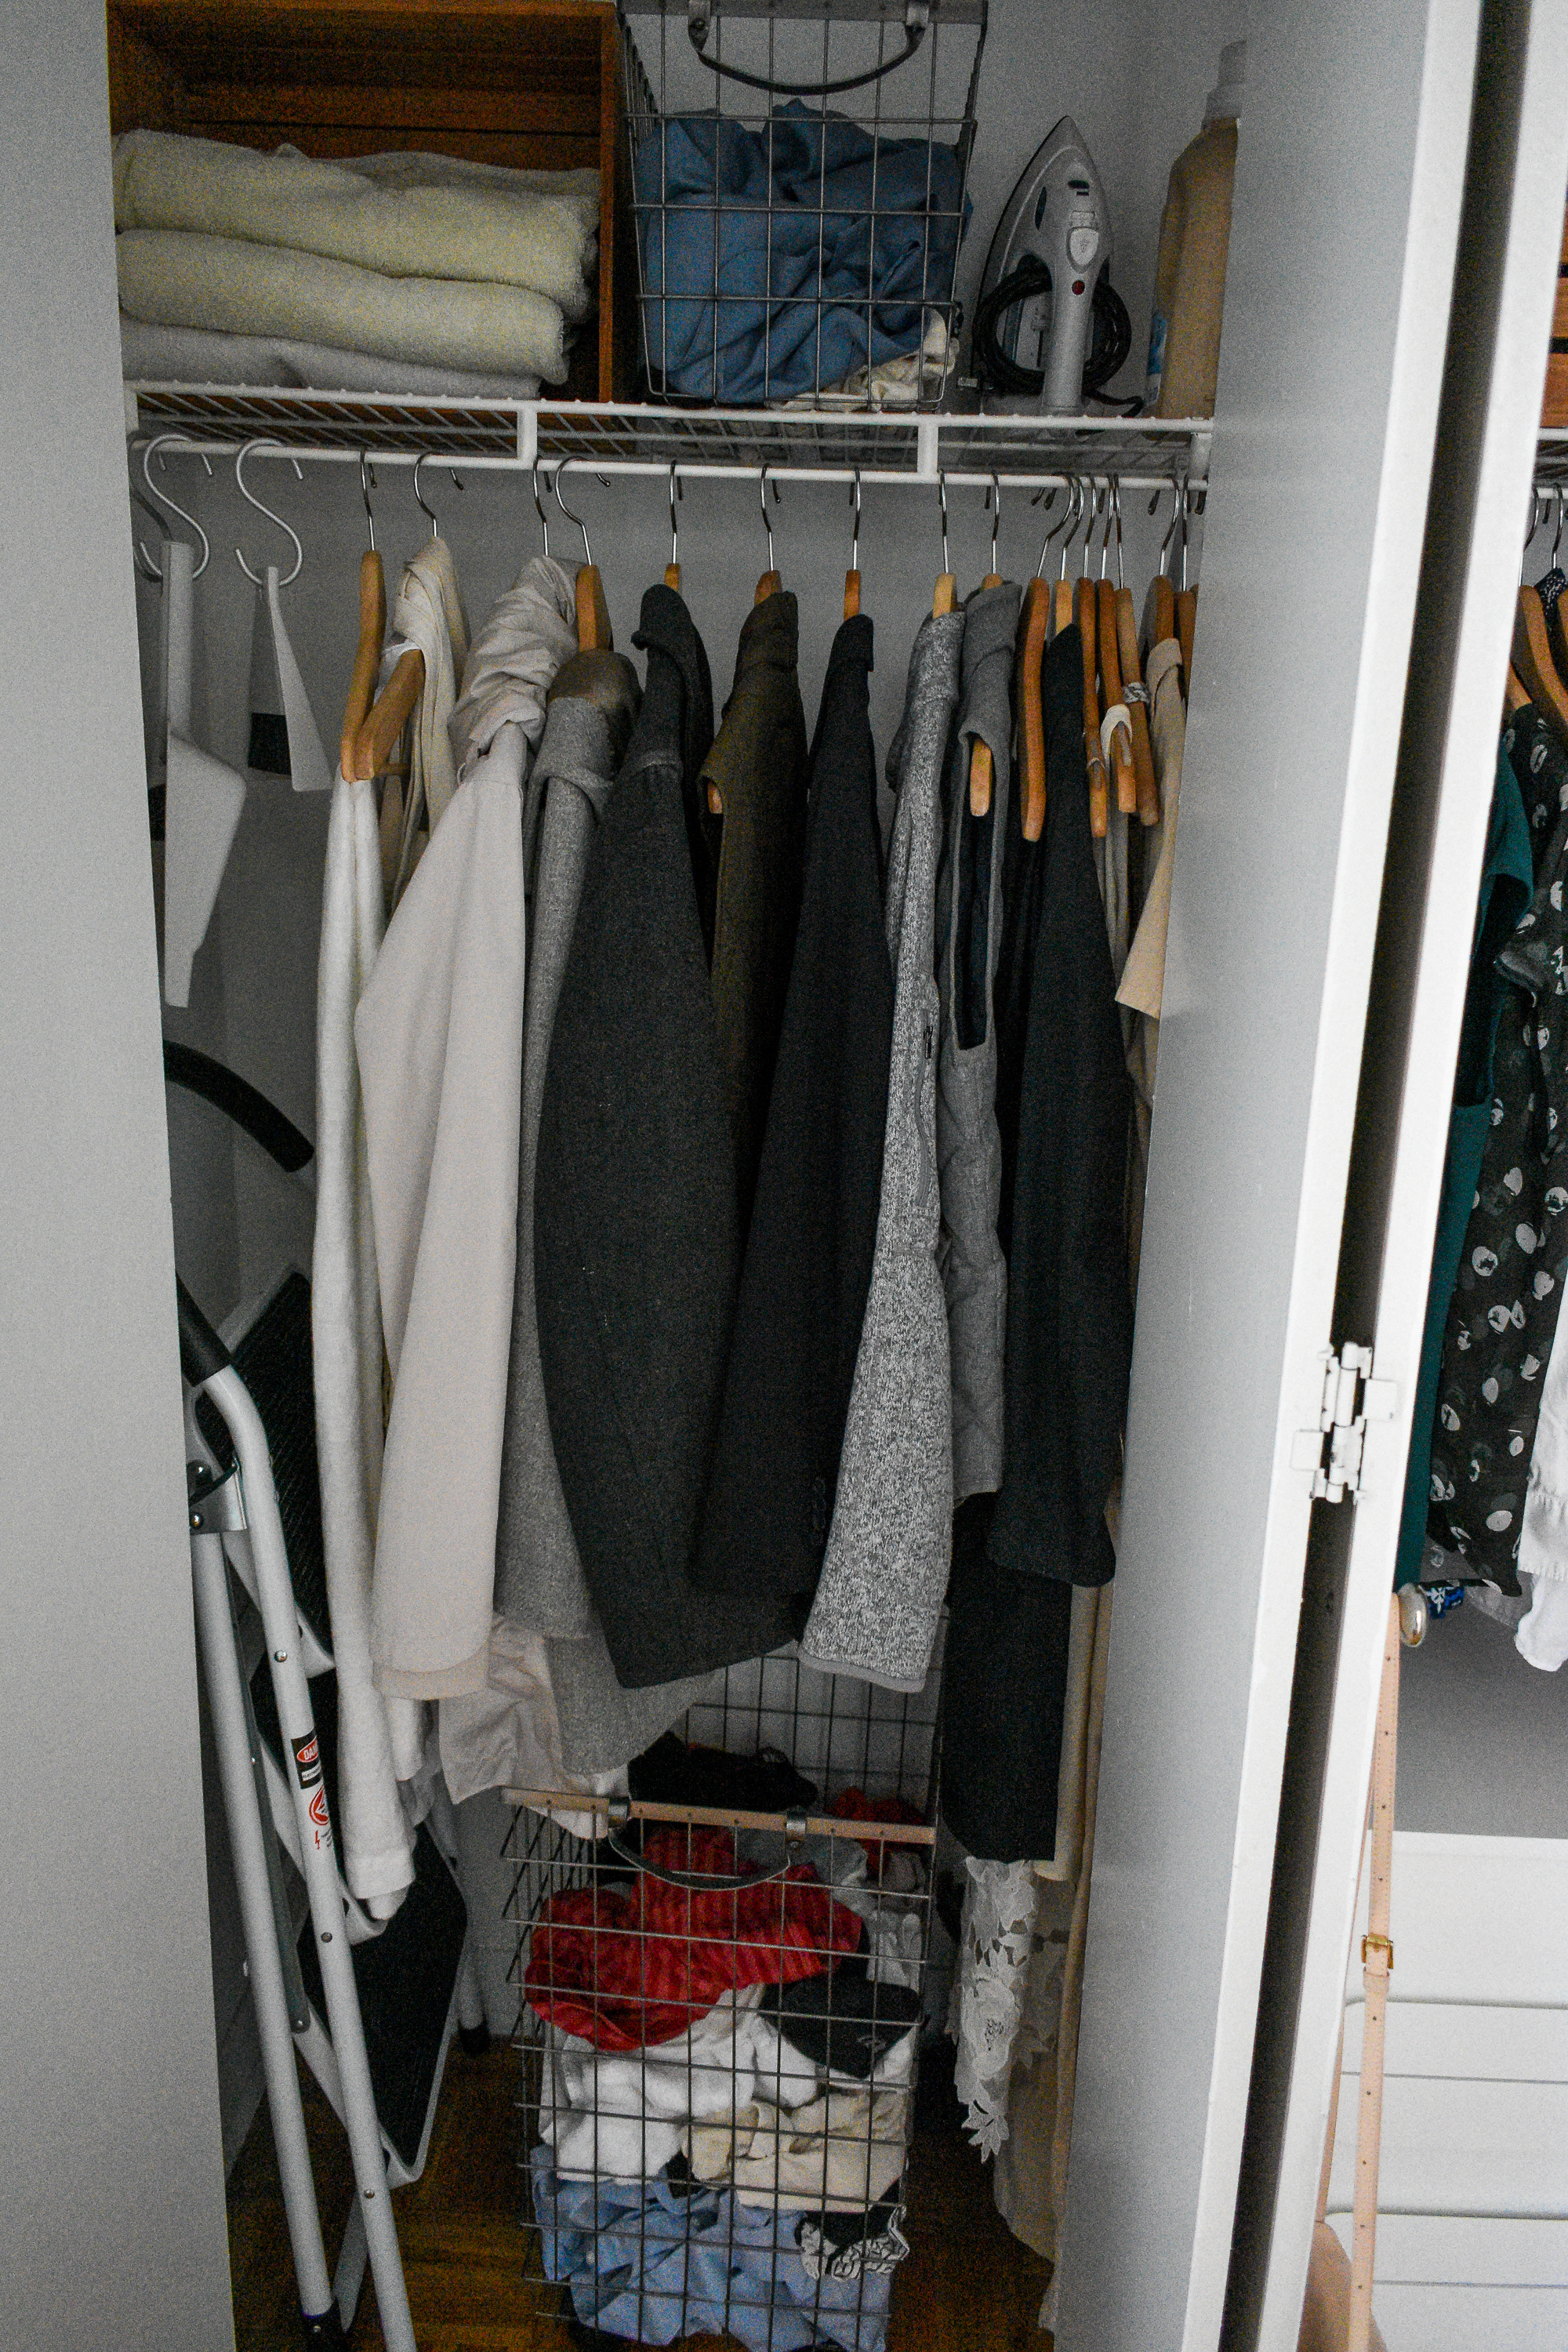 Coat, linens, and laundry